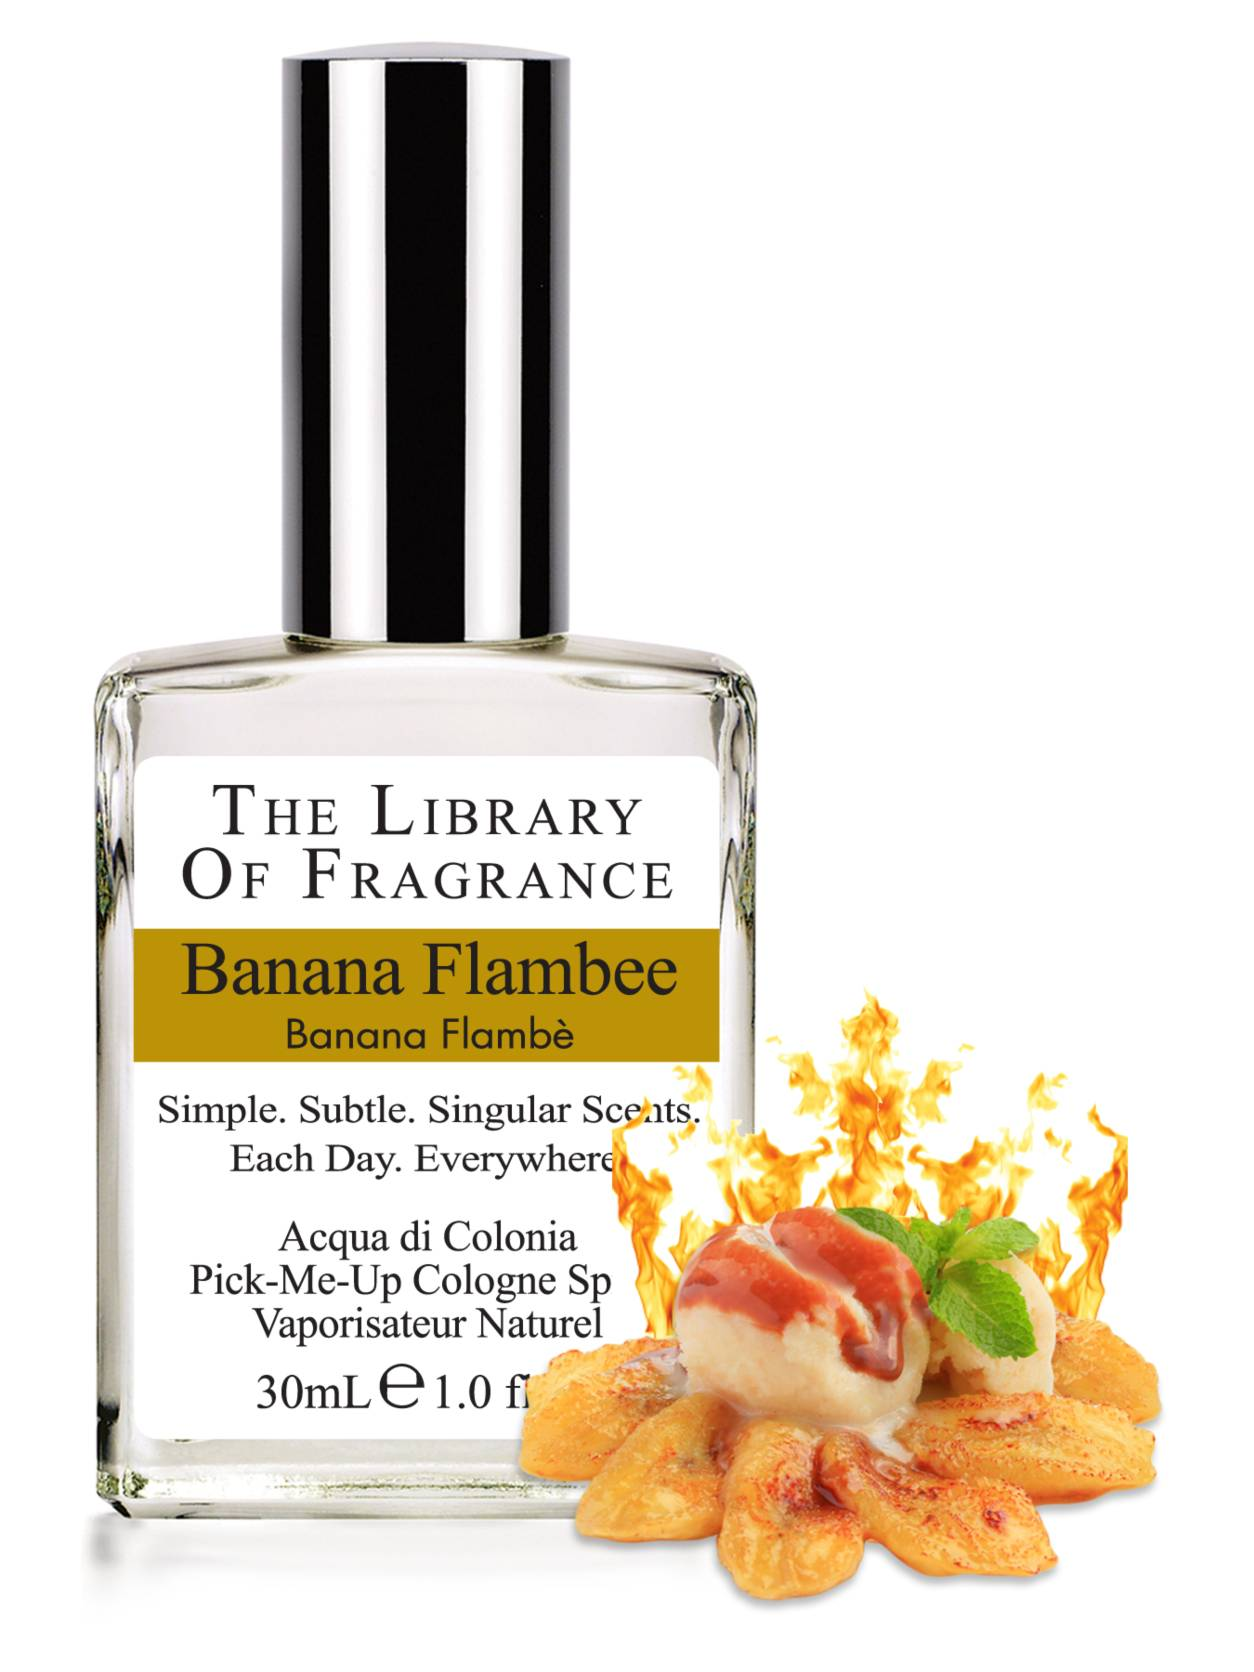 Banana Flambe 30mL Italy G